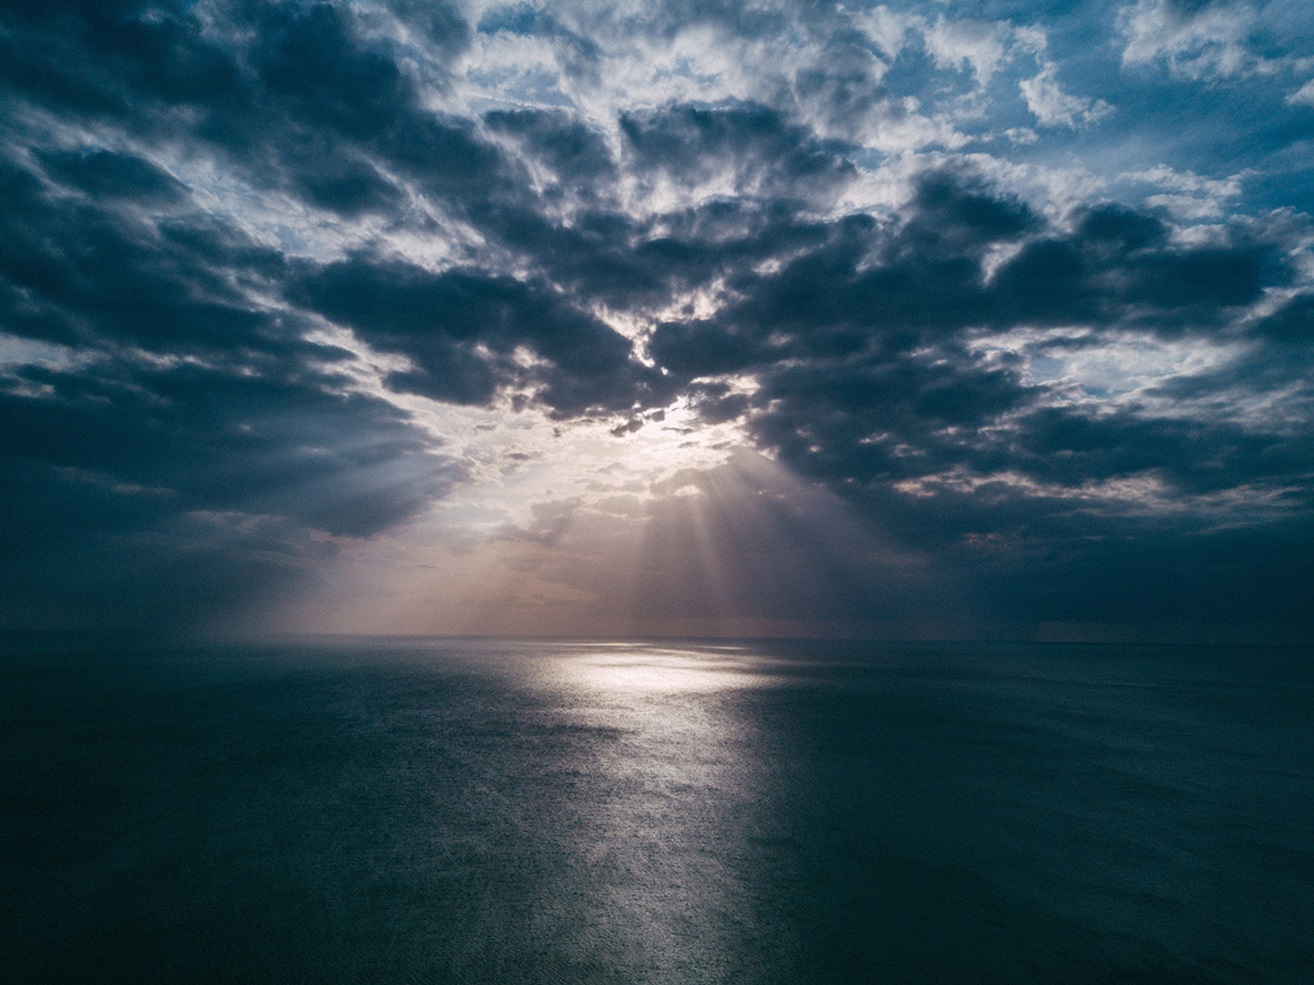 Ocean with sunrays on water